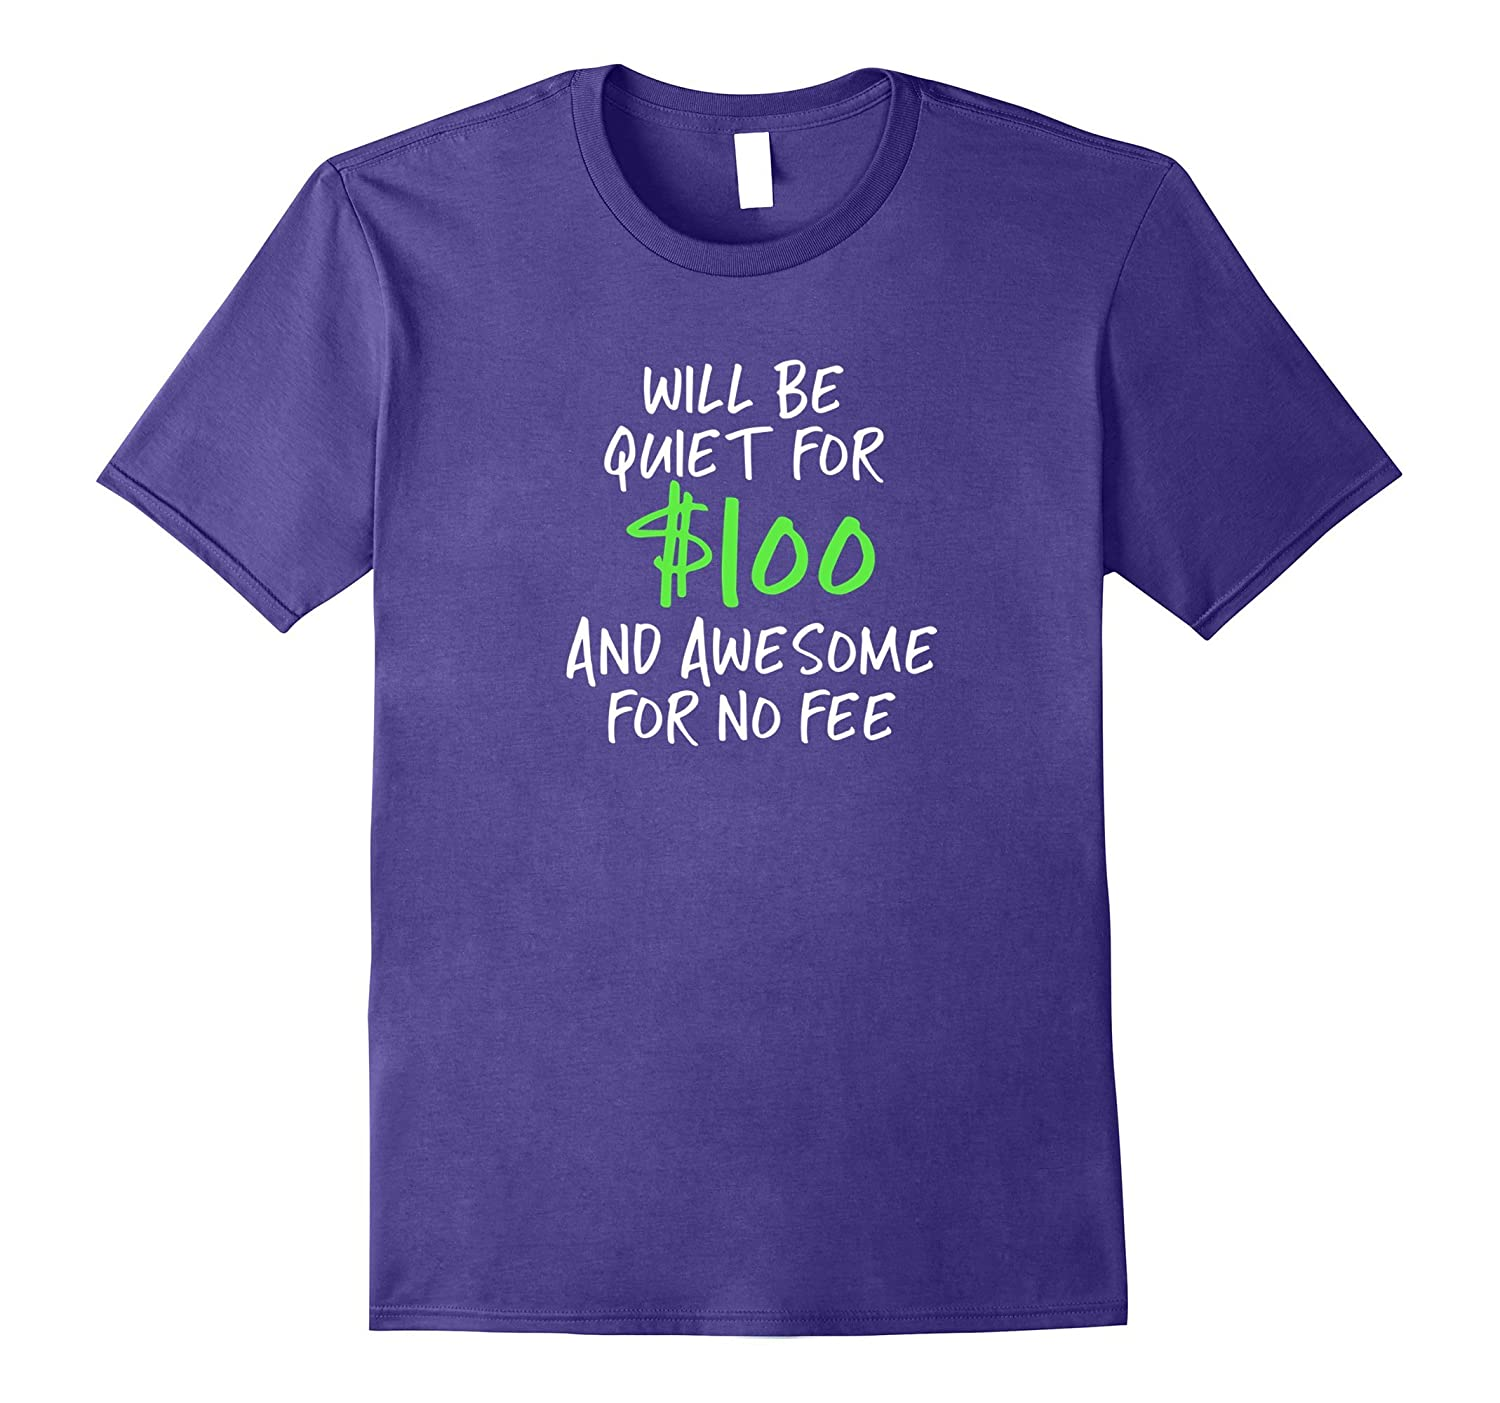 Will Be Quiet for 100 Funny T Shirt for Talkative Person-PL